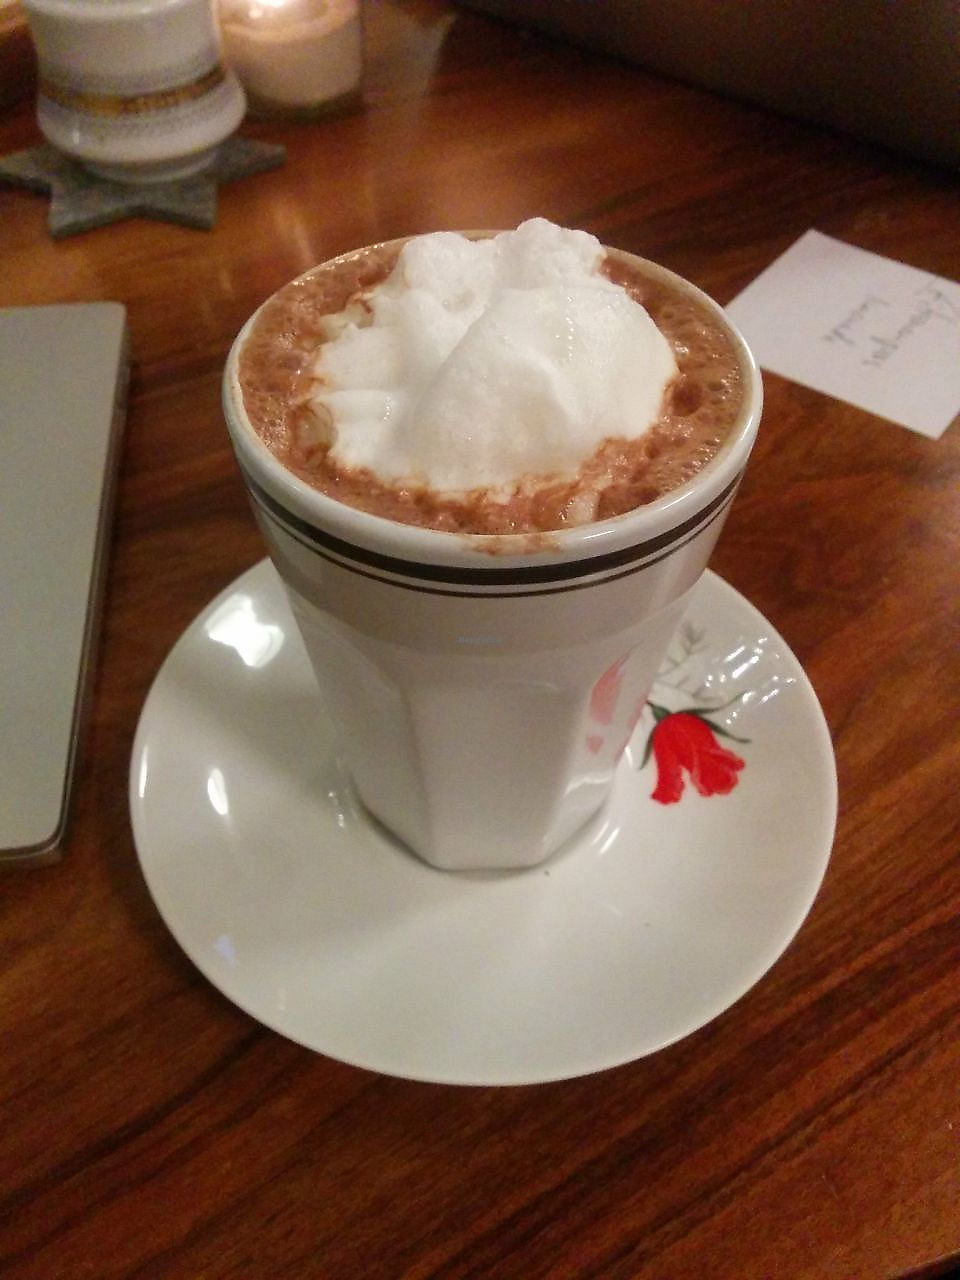 "Photo of V-Cake Cafe  by <a href=""/members/profile/FlokiTheCat"">FlokiTheCat</a> <br/>Hot chocolate <br/> December 11, 2017  - <a href='/contact/abuse/image/40824/334764'>Report</a>"